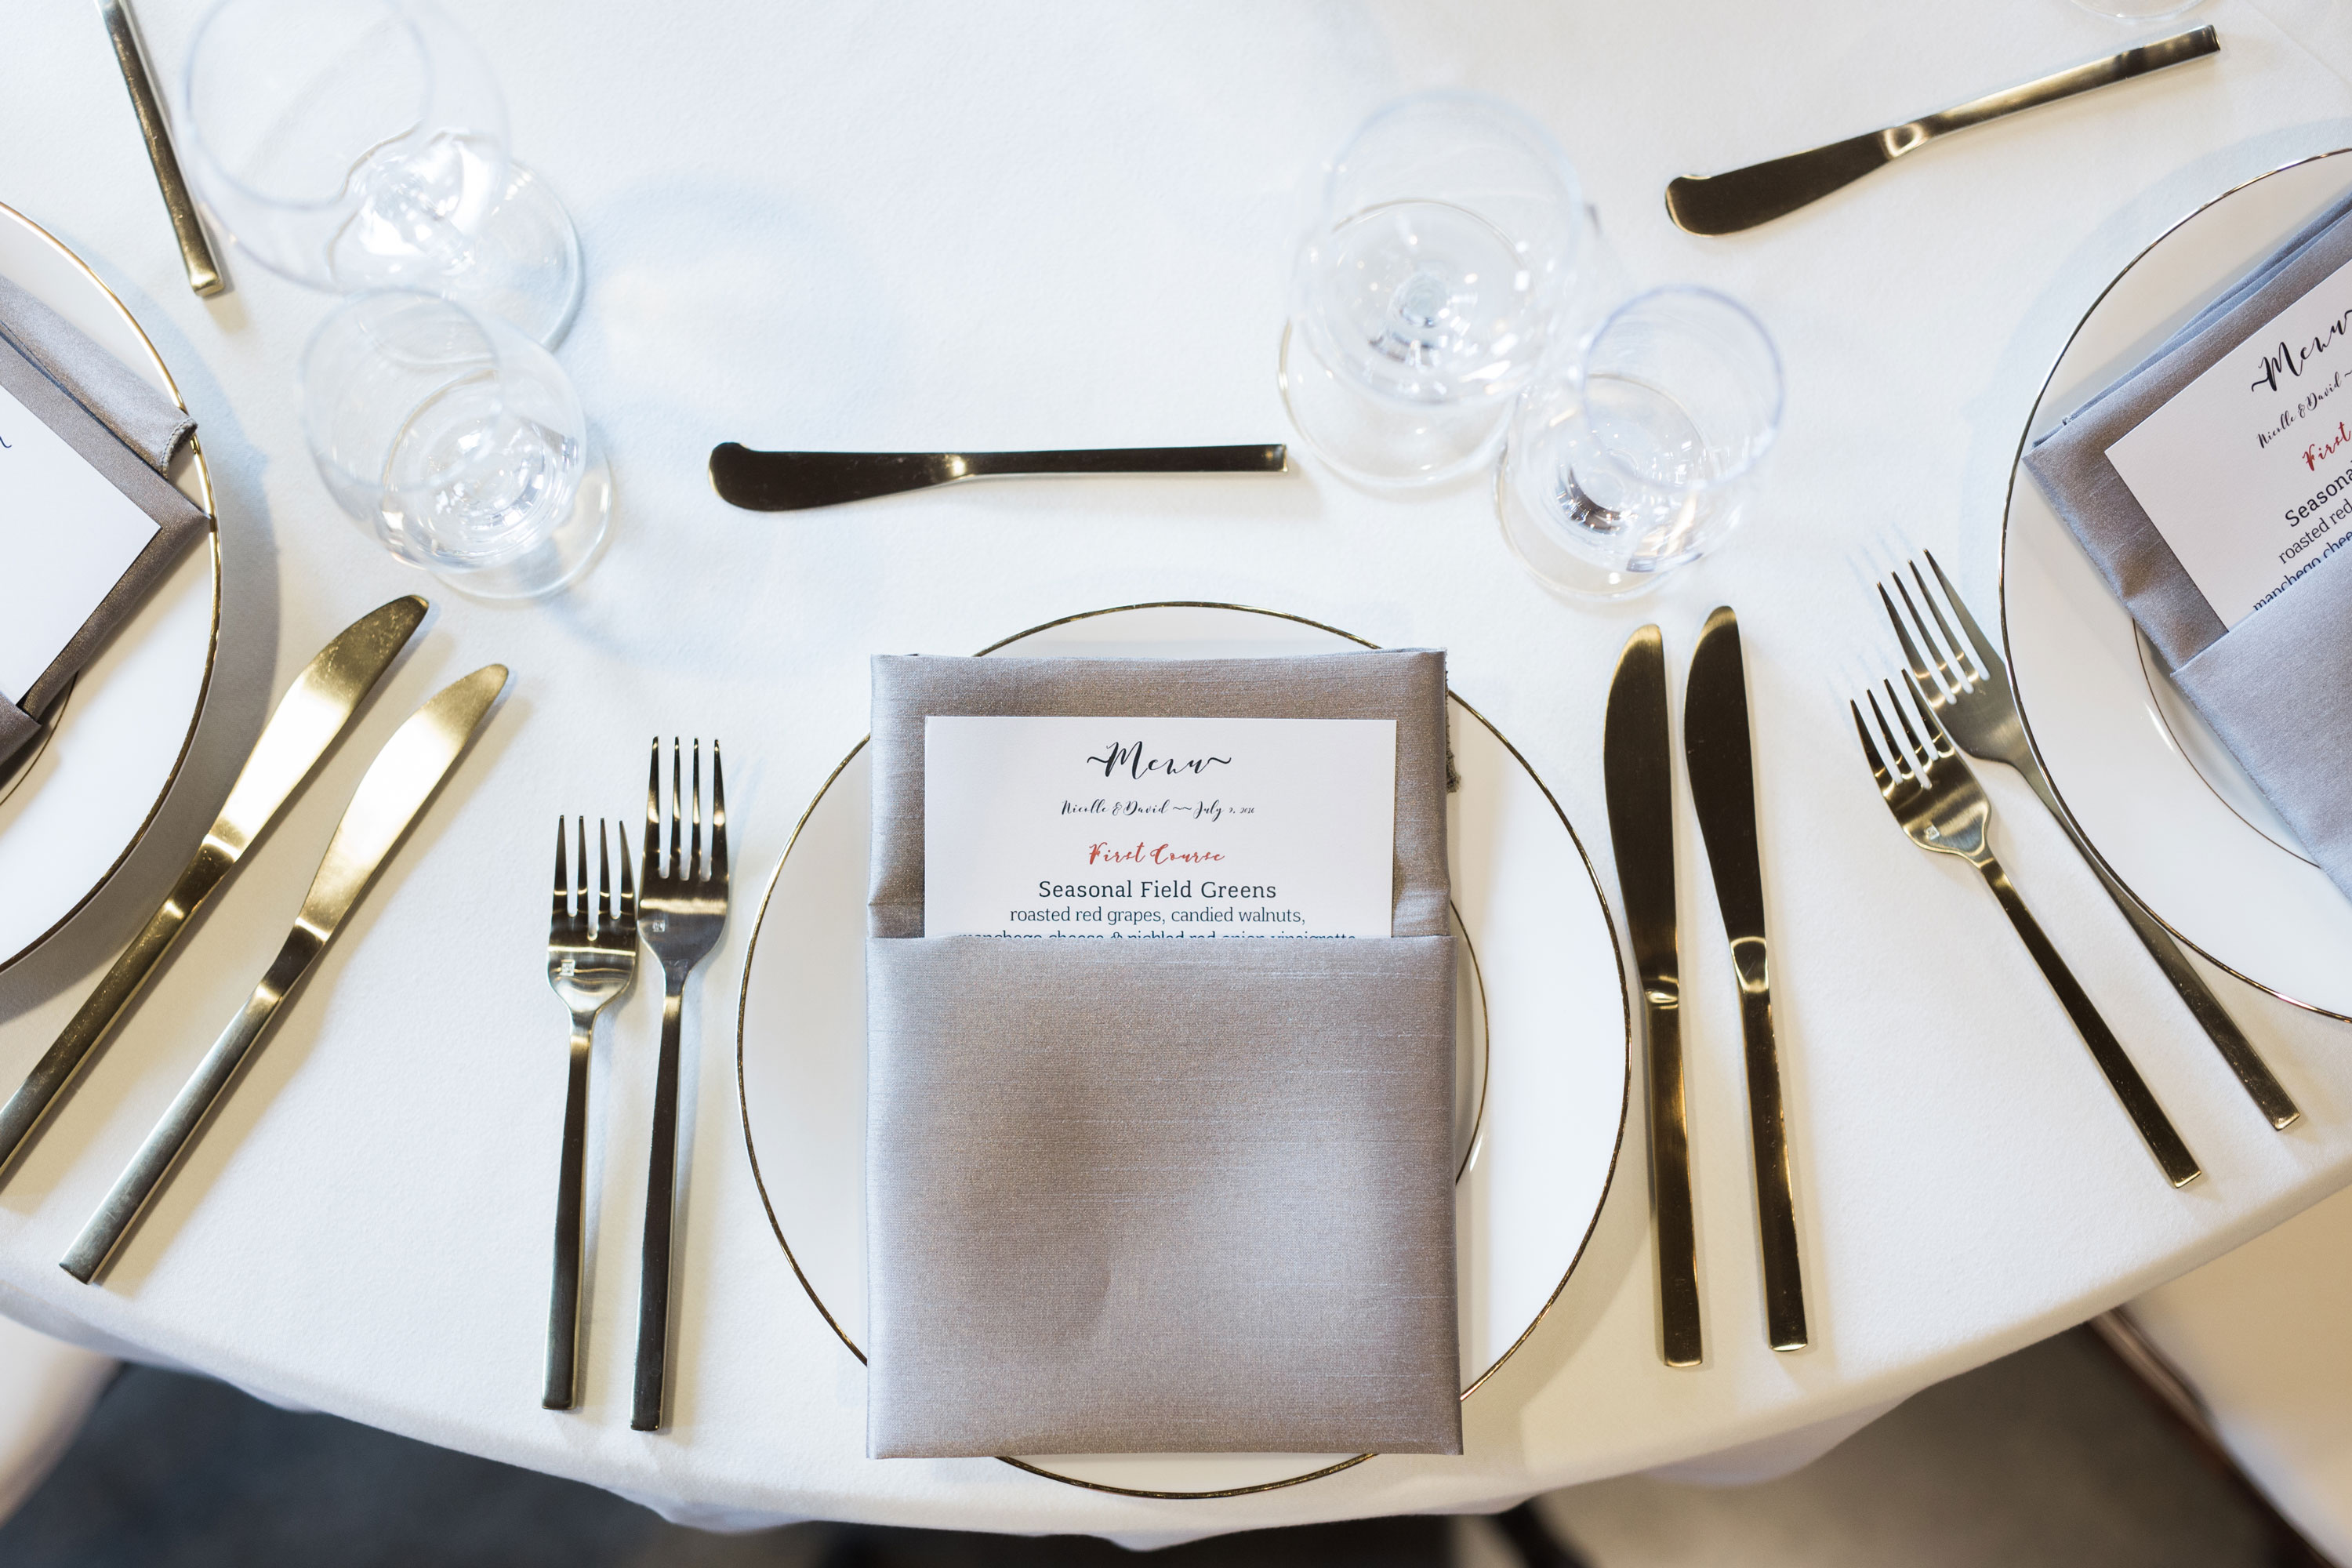 nicolle-and-david-wedding-table-setting